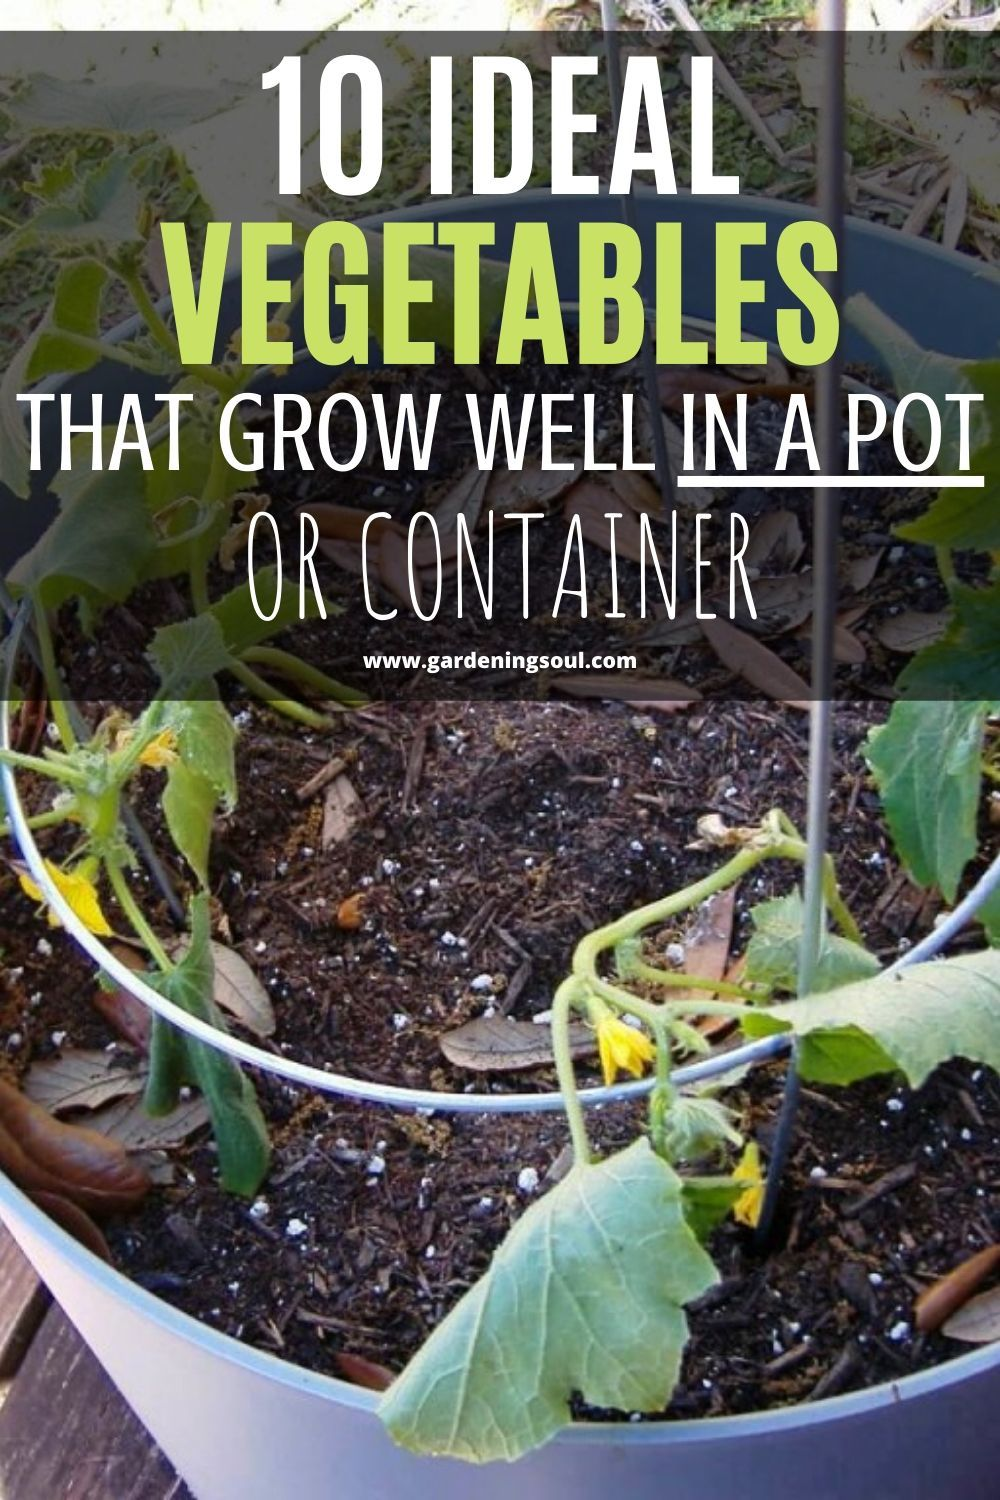 10 Ideal Vegetables That Grow Well In A Pot Or Container